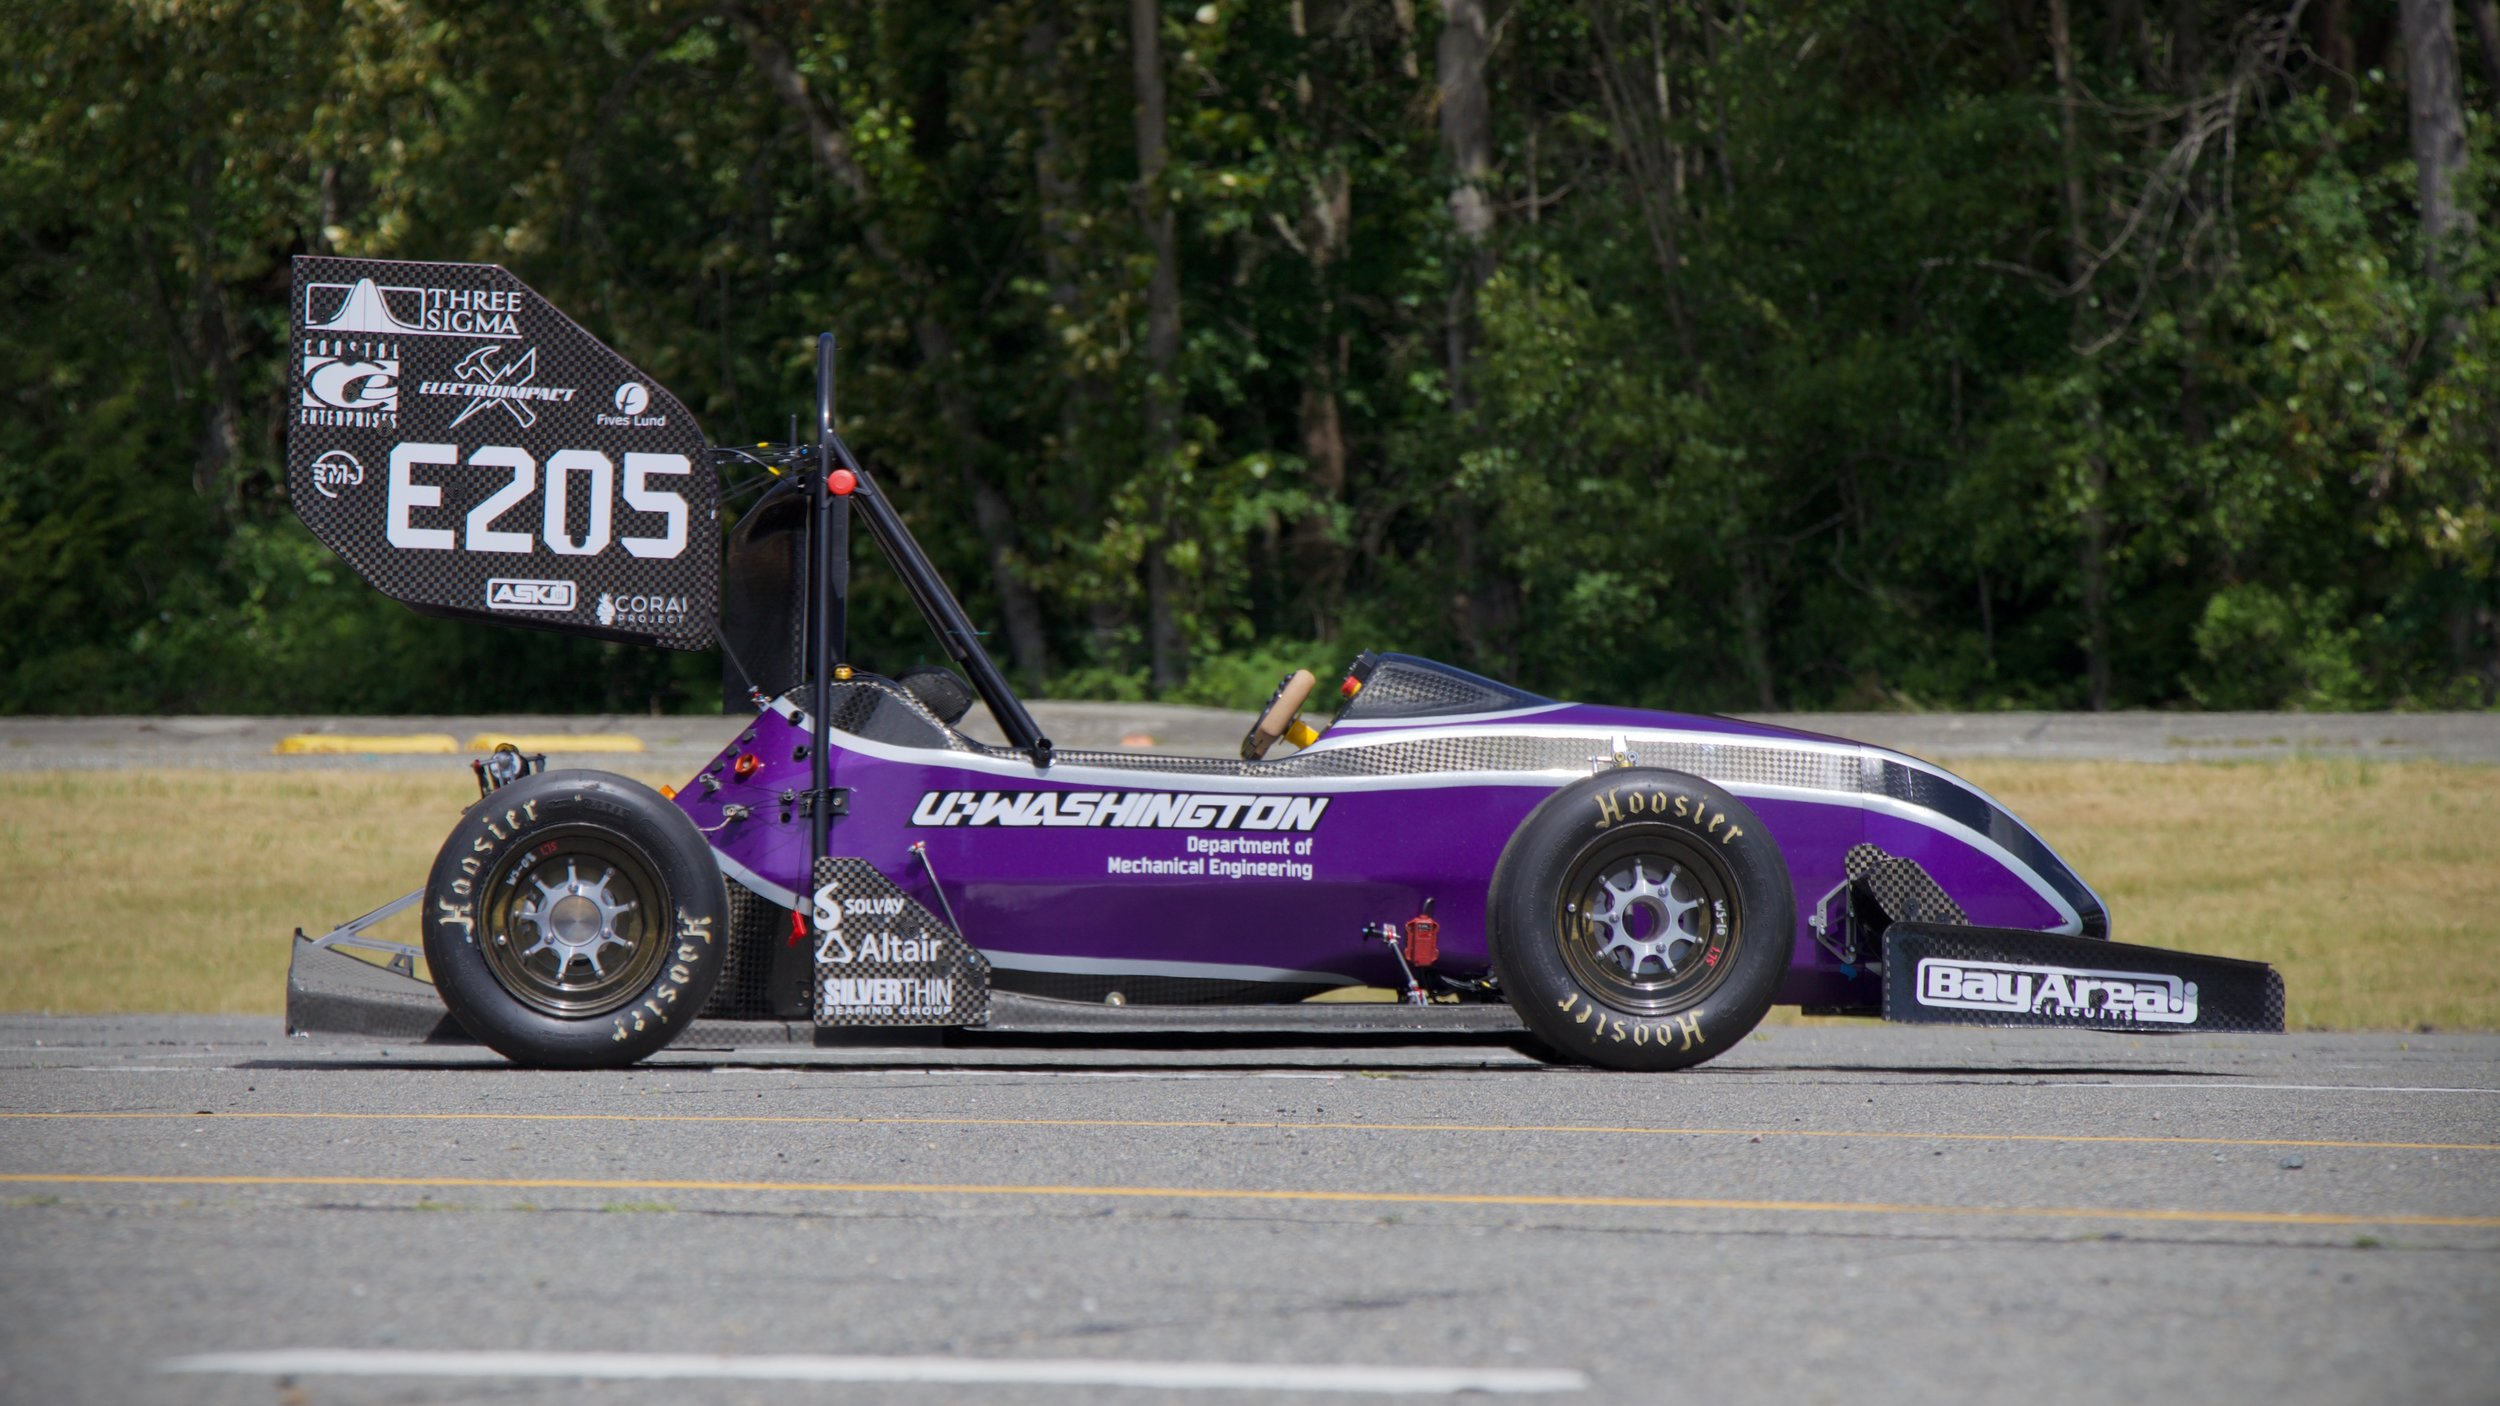 UW Formula Motorsports 2018 Team 29 eCar, with CORAI logo on lower right hand corner of wing.